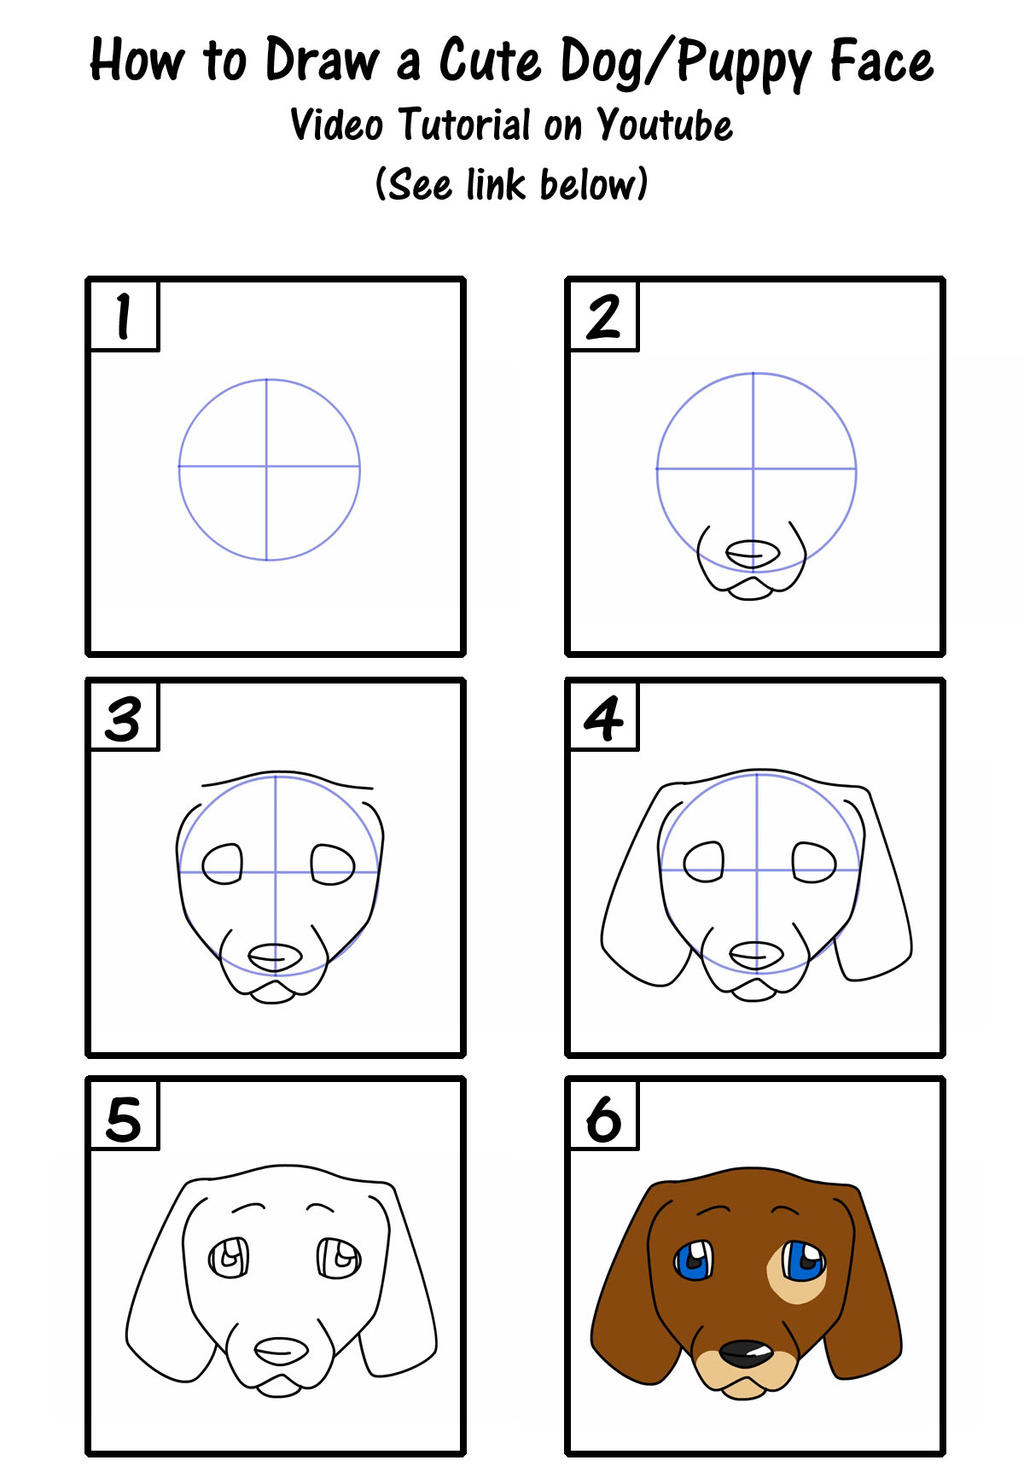 How to Draw a Cute Pup...